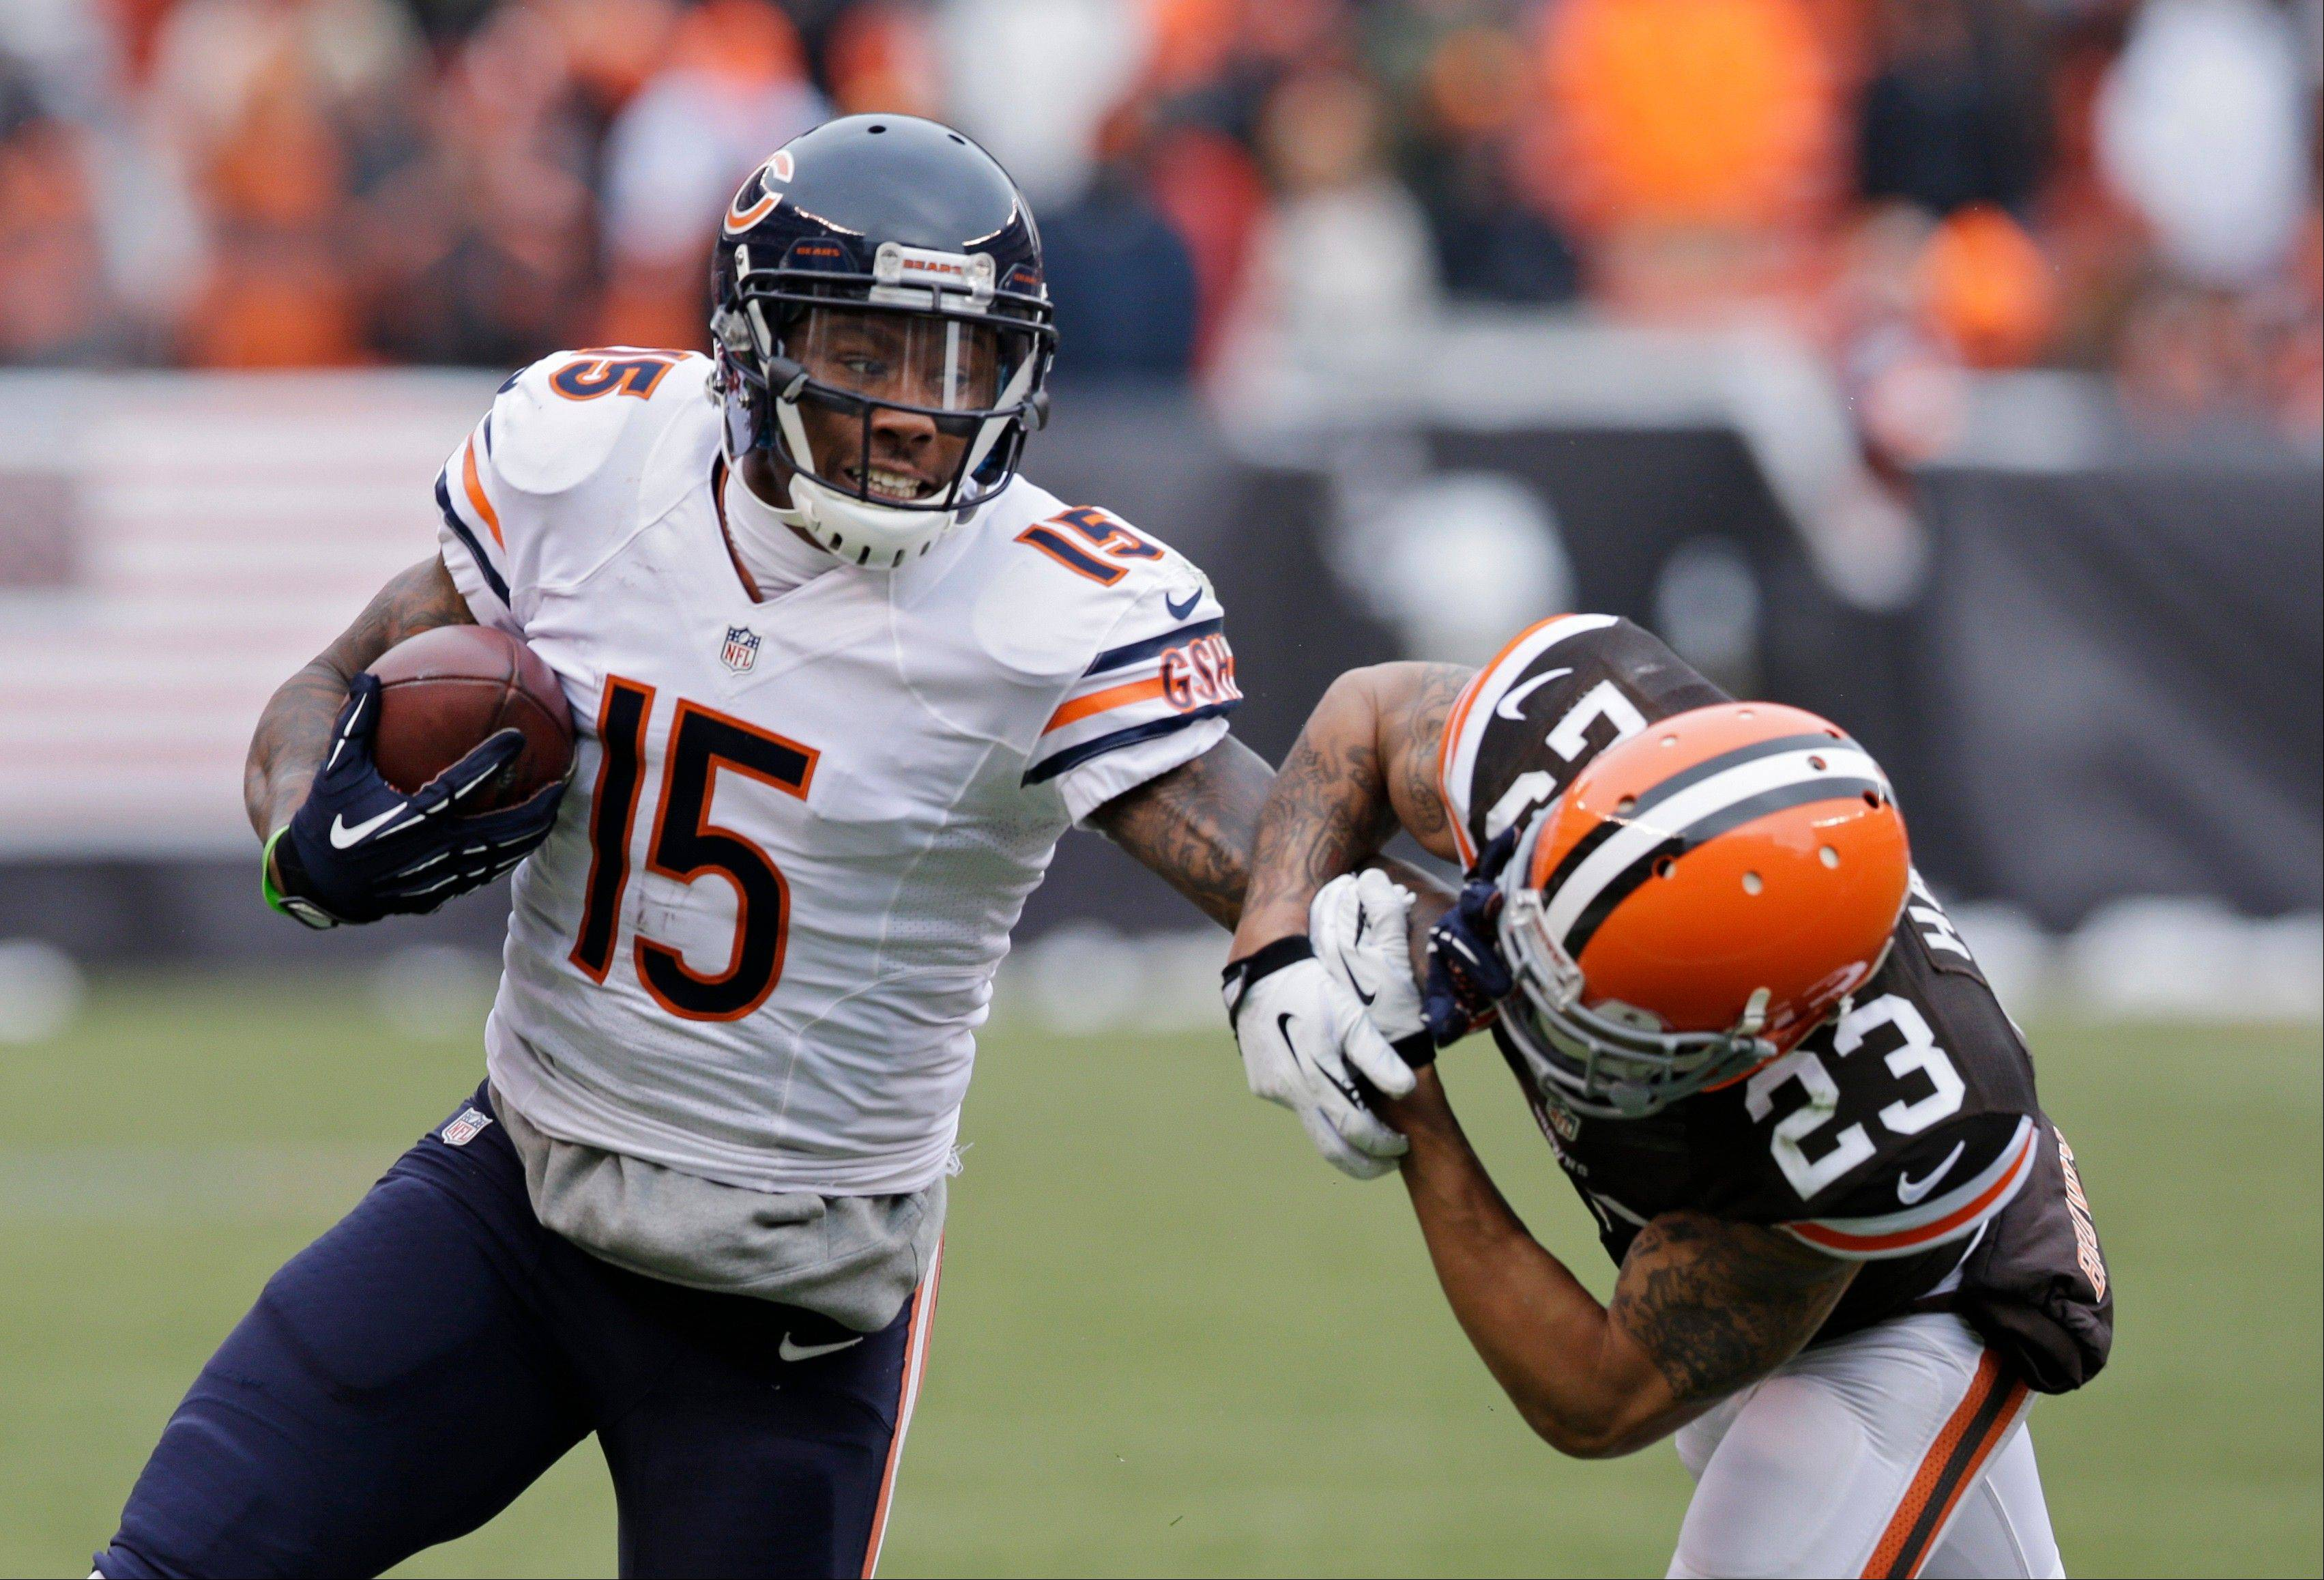 Chicago Bears wide receiver Brandon Marshall (15) pushes Cleveland Browns cornerback Joe Haden (23) away after a catch in the second quarter.